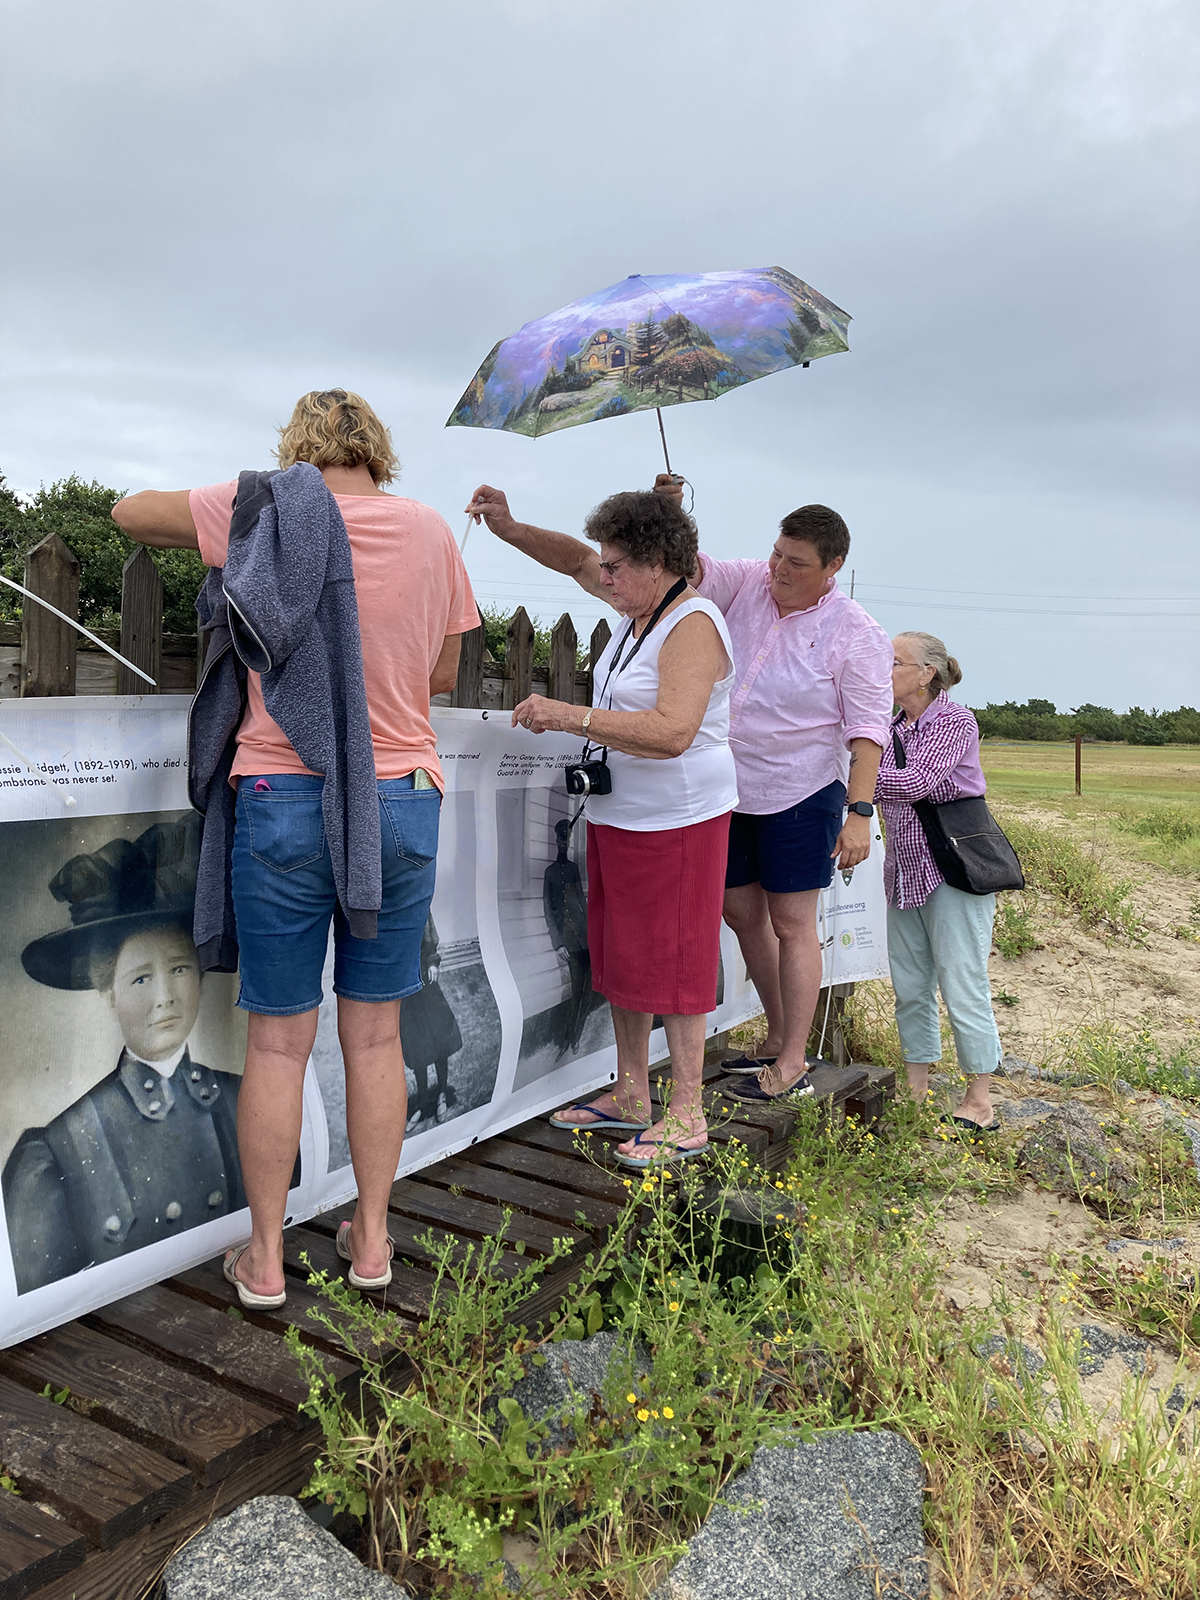 Jean Hooper, center, whose husband, grandparents and great-grandparents are buried at the Salvo Community Cemetery, helps secure the banner to the fence, as Jenny Creech, who also has kin buried here, shields her from drizzle.  Photo: Justin Cook